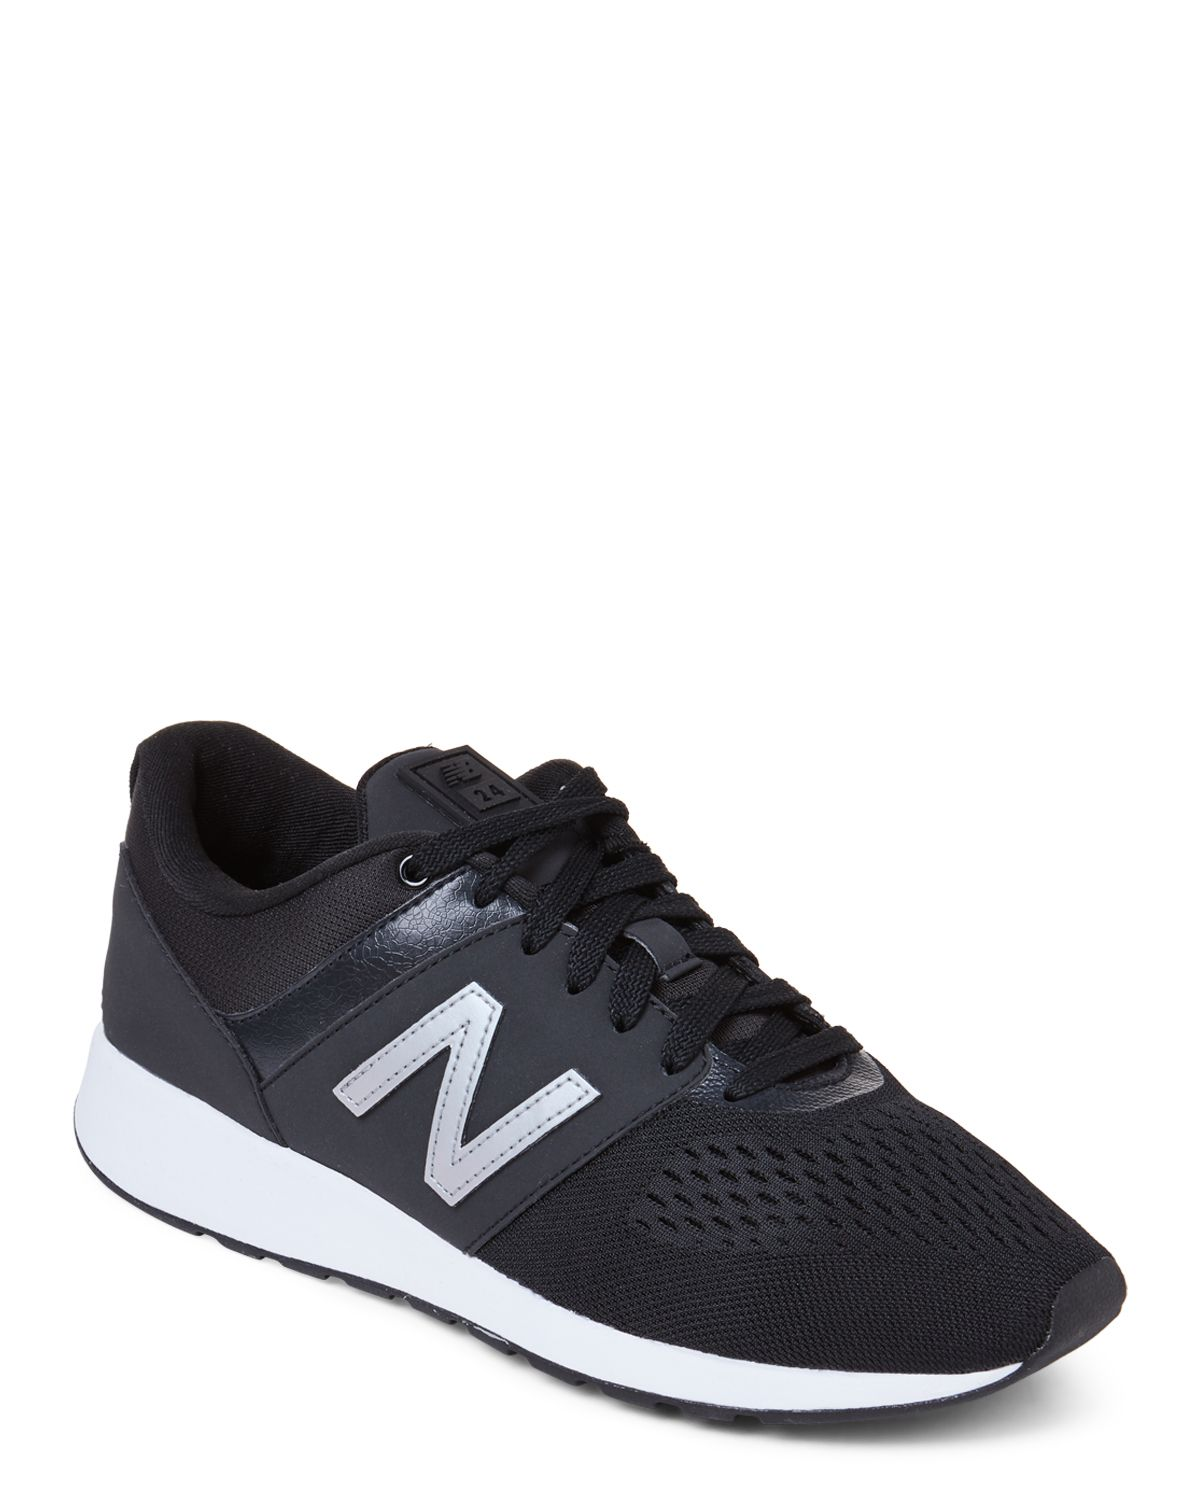 47bdc36ab8 New Balance Black Running Course Sneakers in 2019 | *Apparel ...